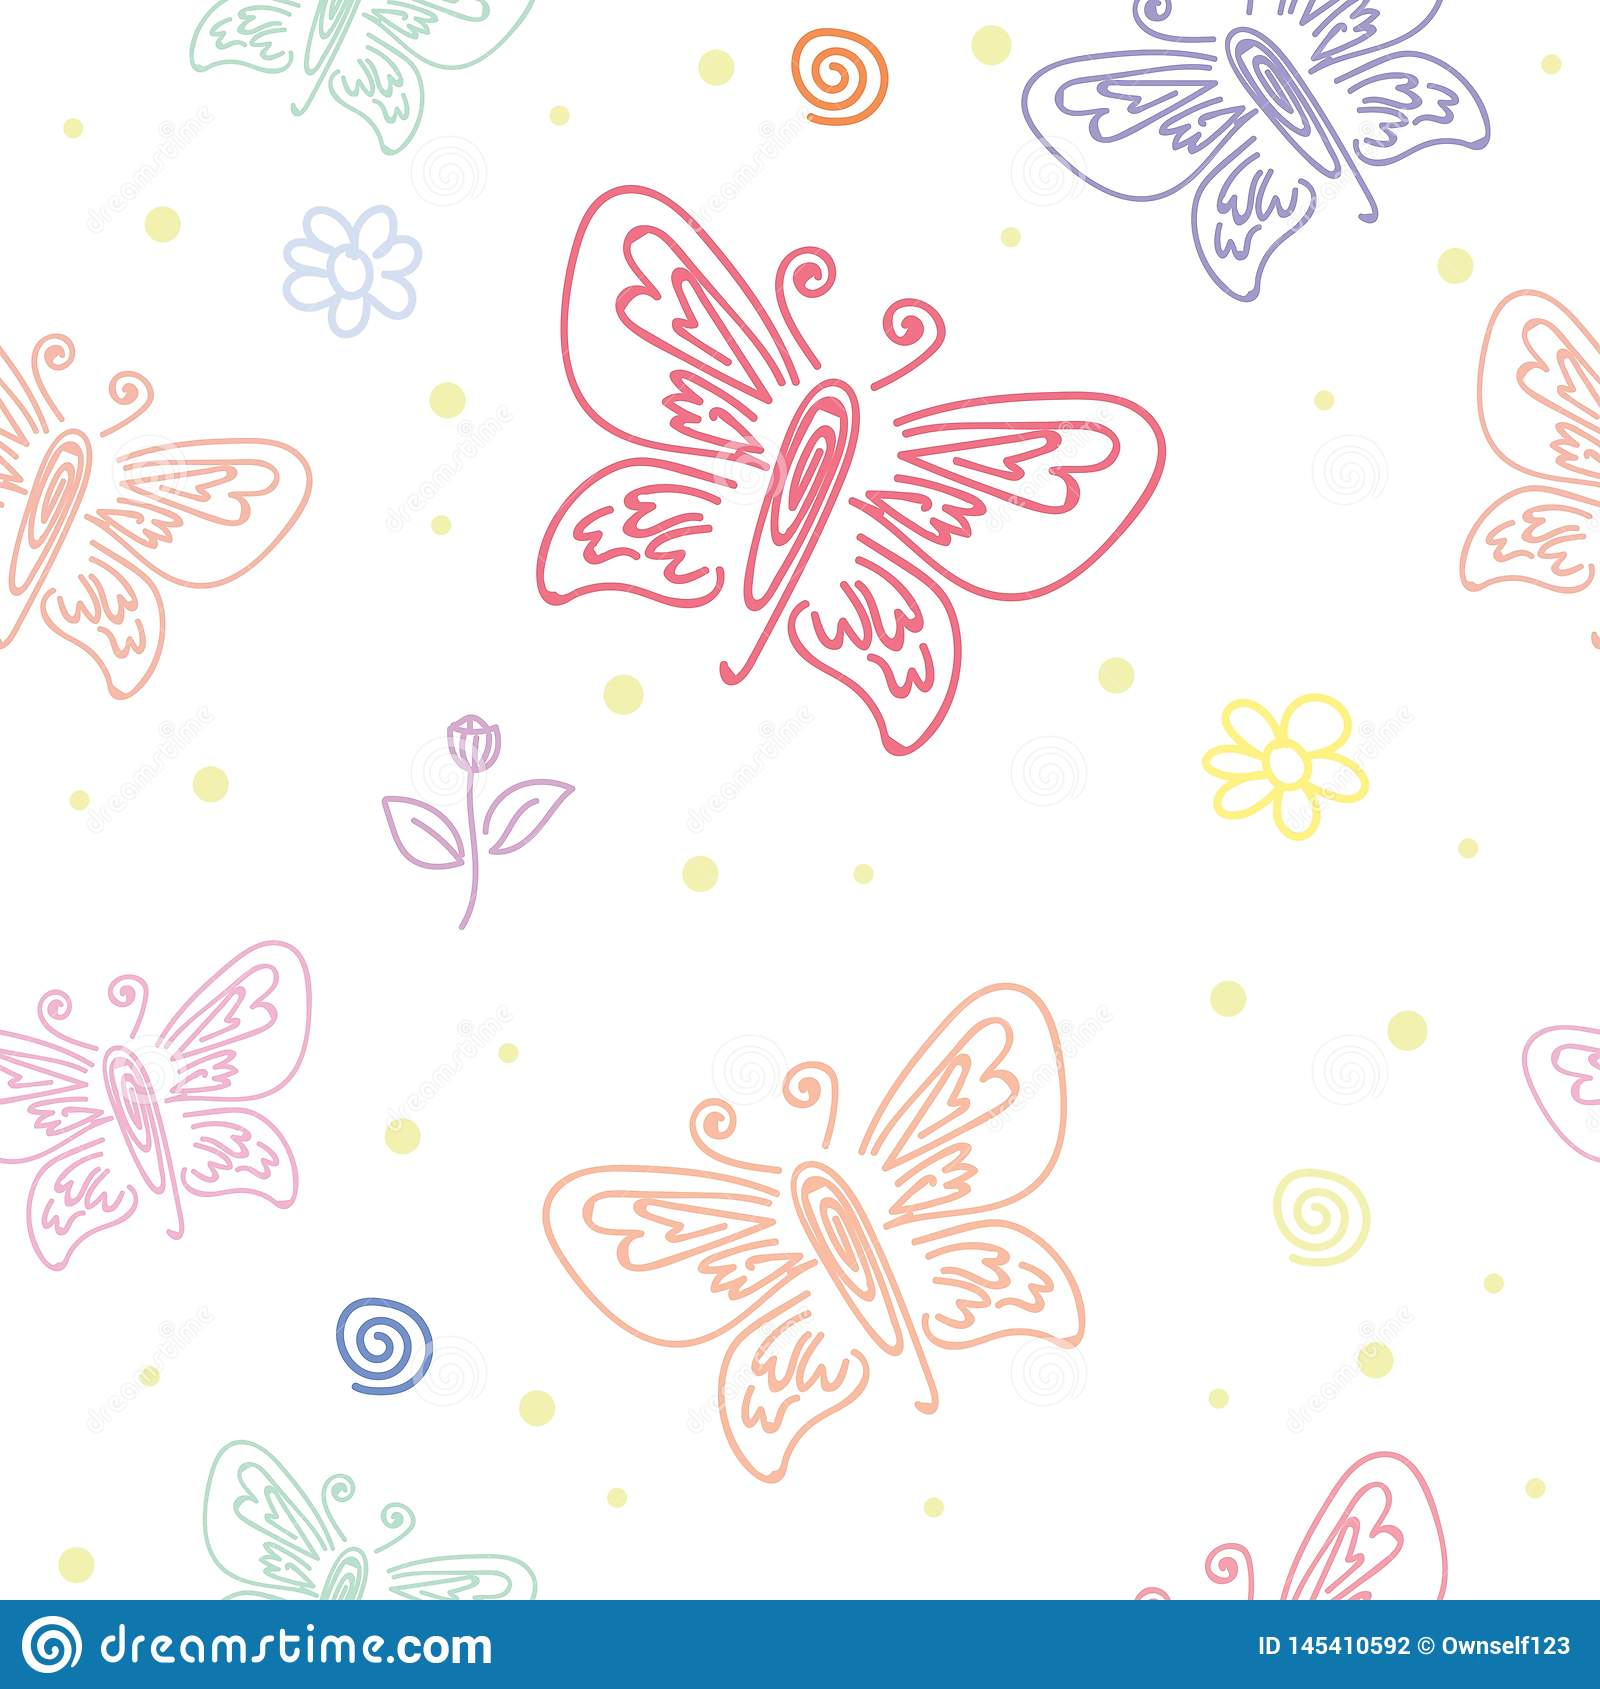 Seamless Pattern With Motifs Of Various Butterflies Butterfly Ornament Seamless Pattern For Wall Art Design Stock Vector Illustration Of Graphic Pink 145410592